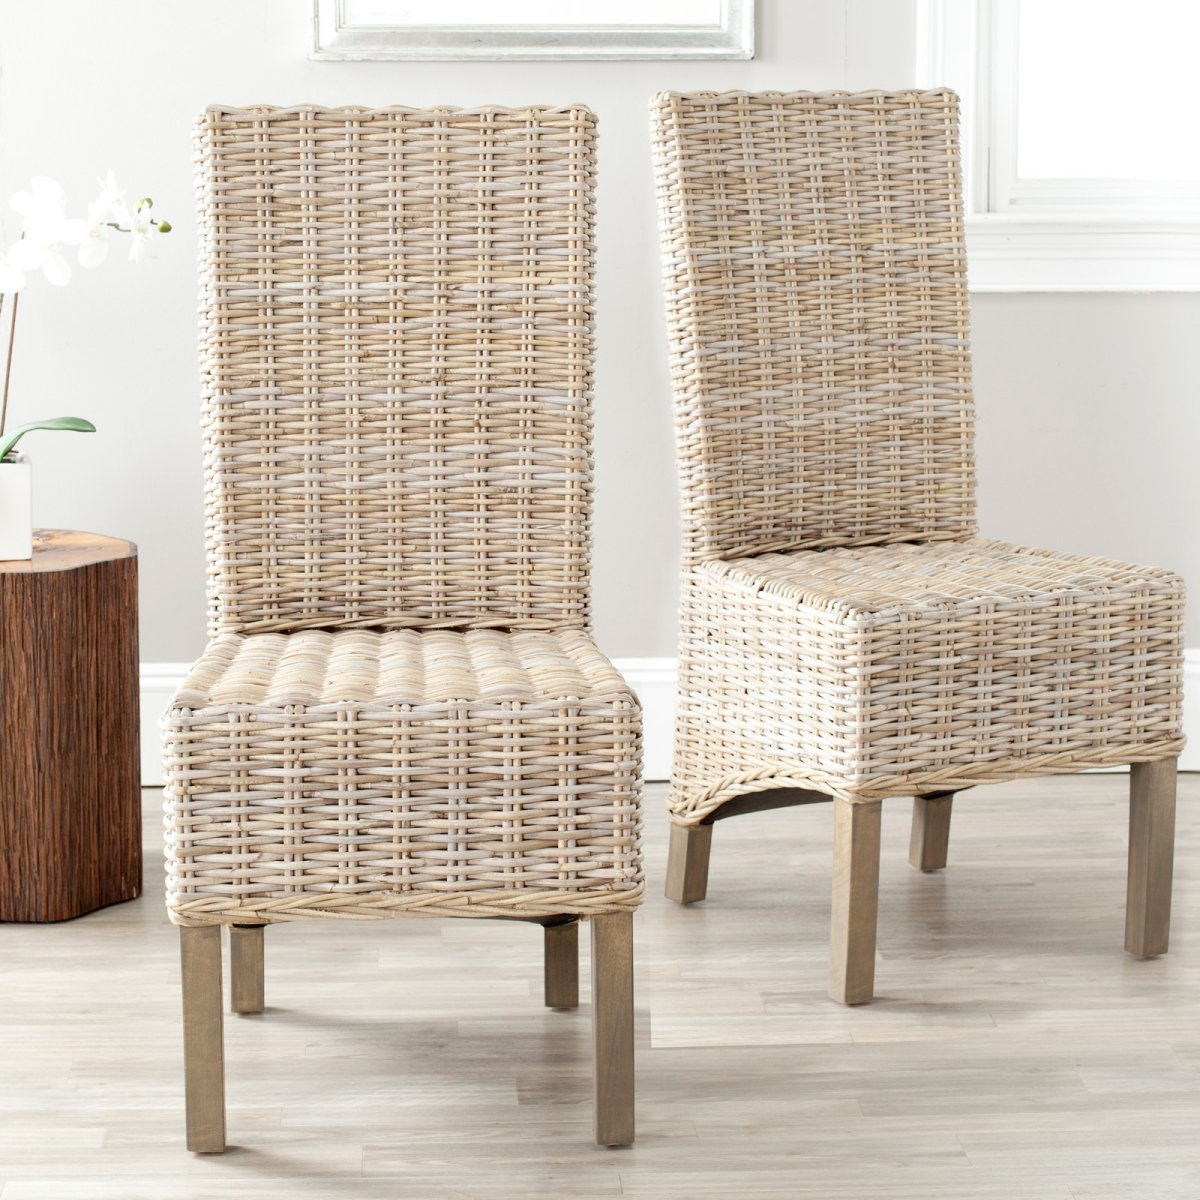 Image of: wicker dining chairs ideas